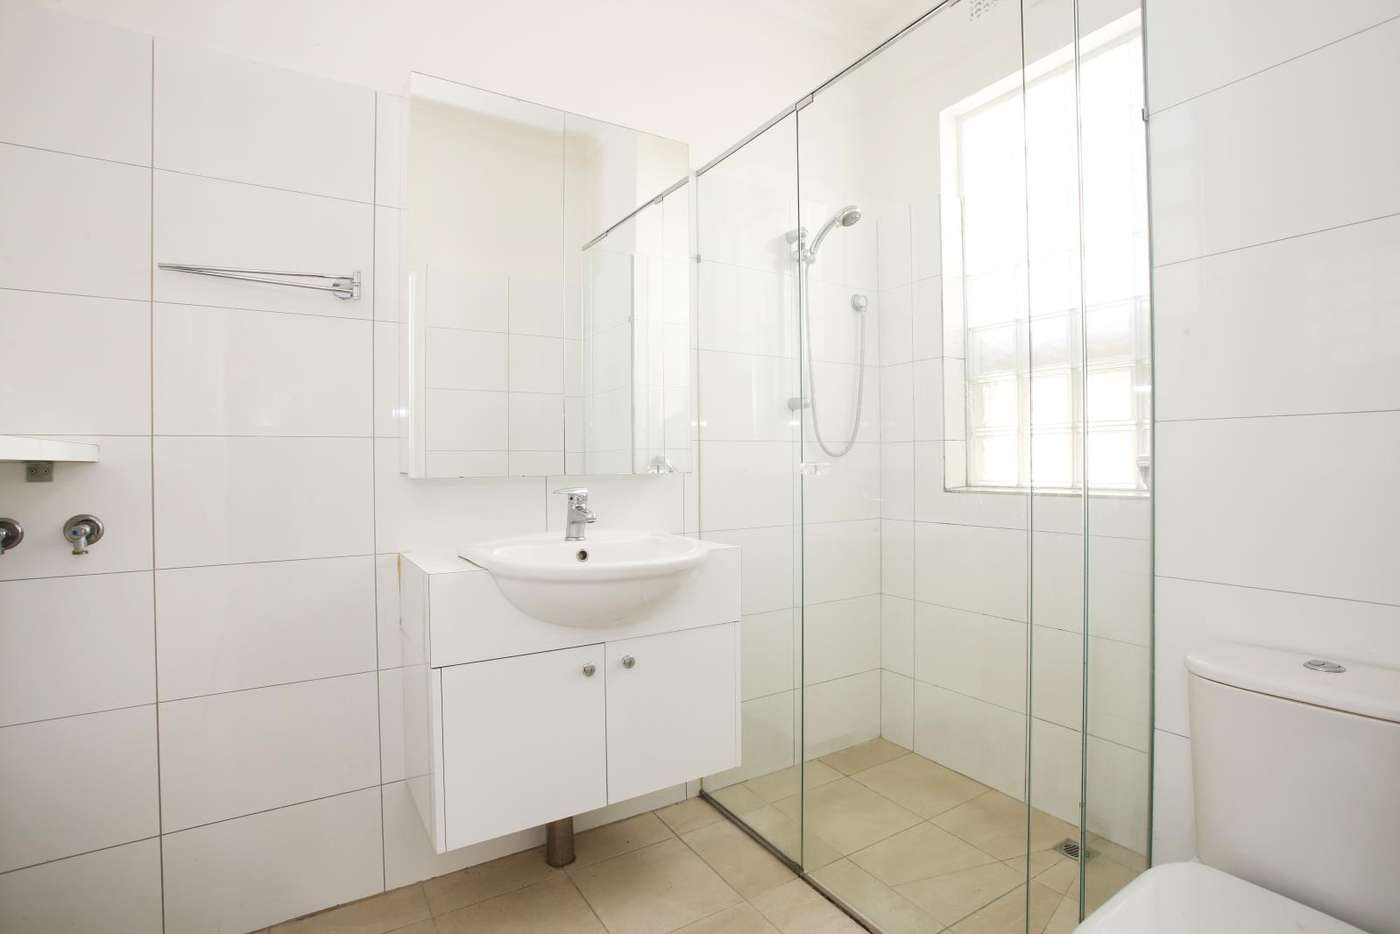 Sixth view of Homely unit listing, 3/16 Marne Street, South Yarra VIC 3141